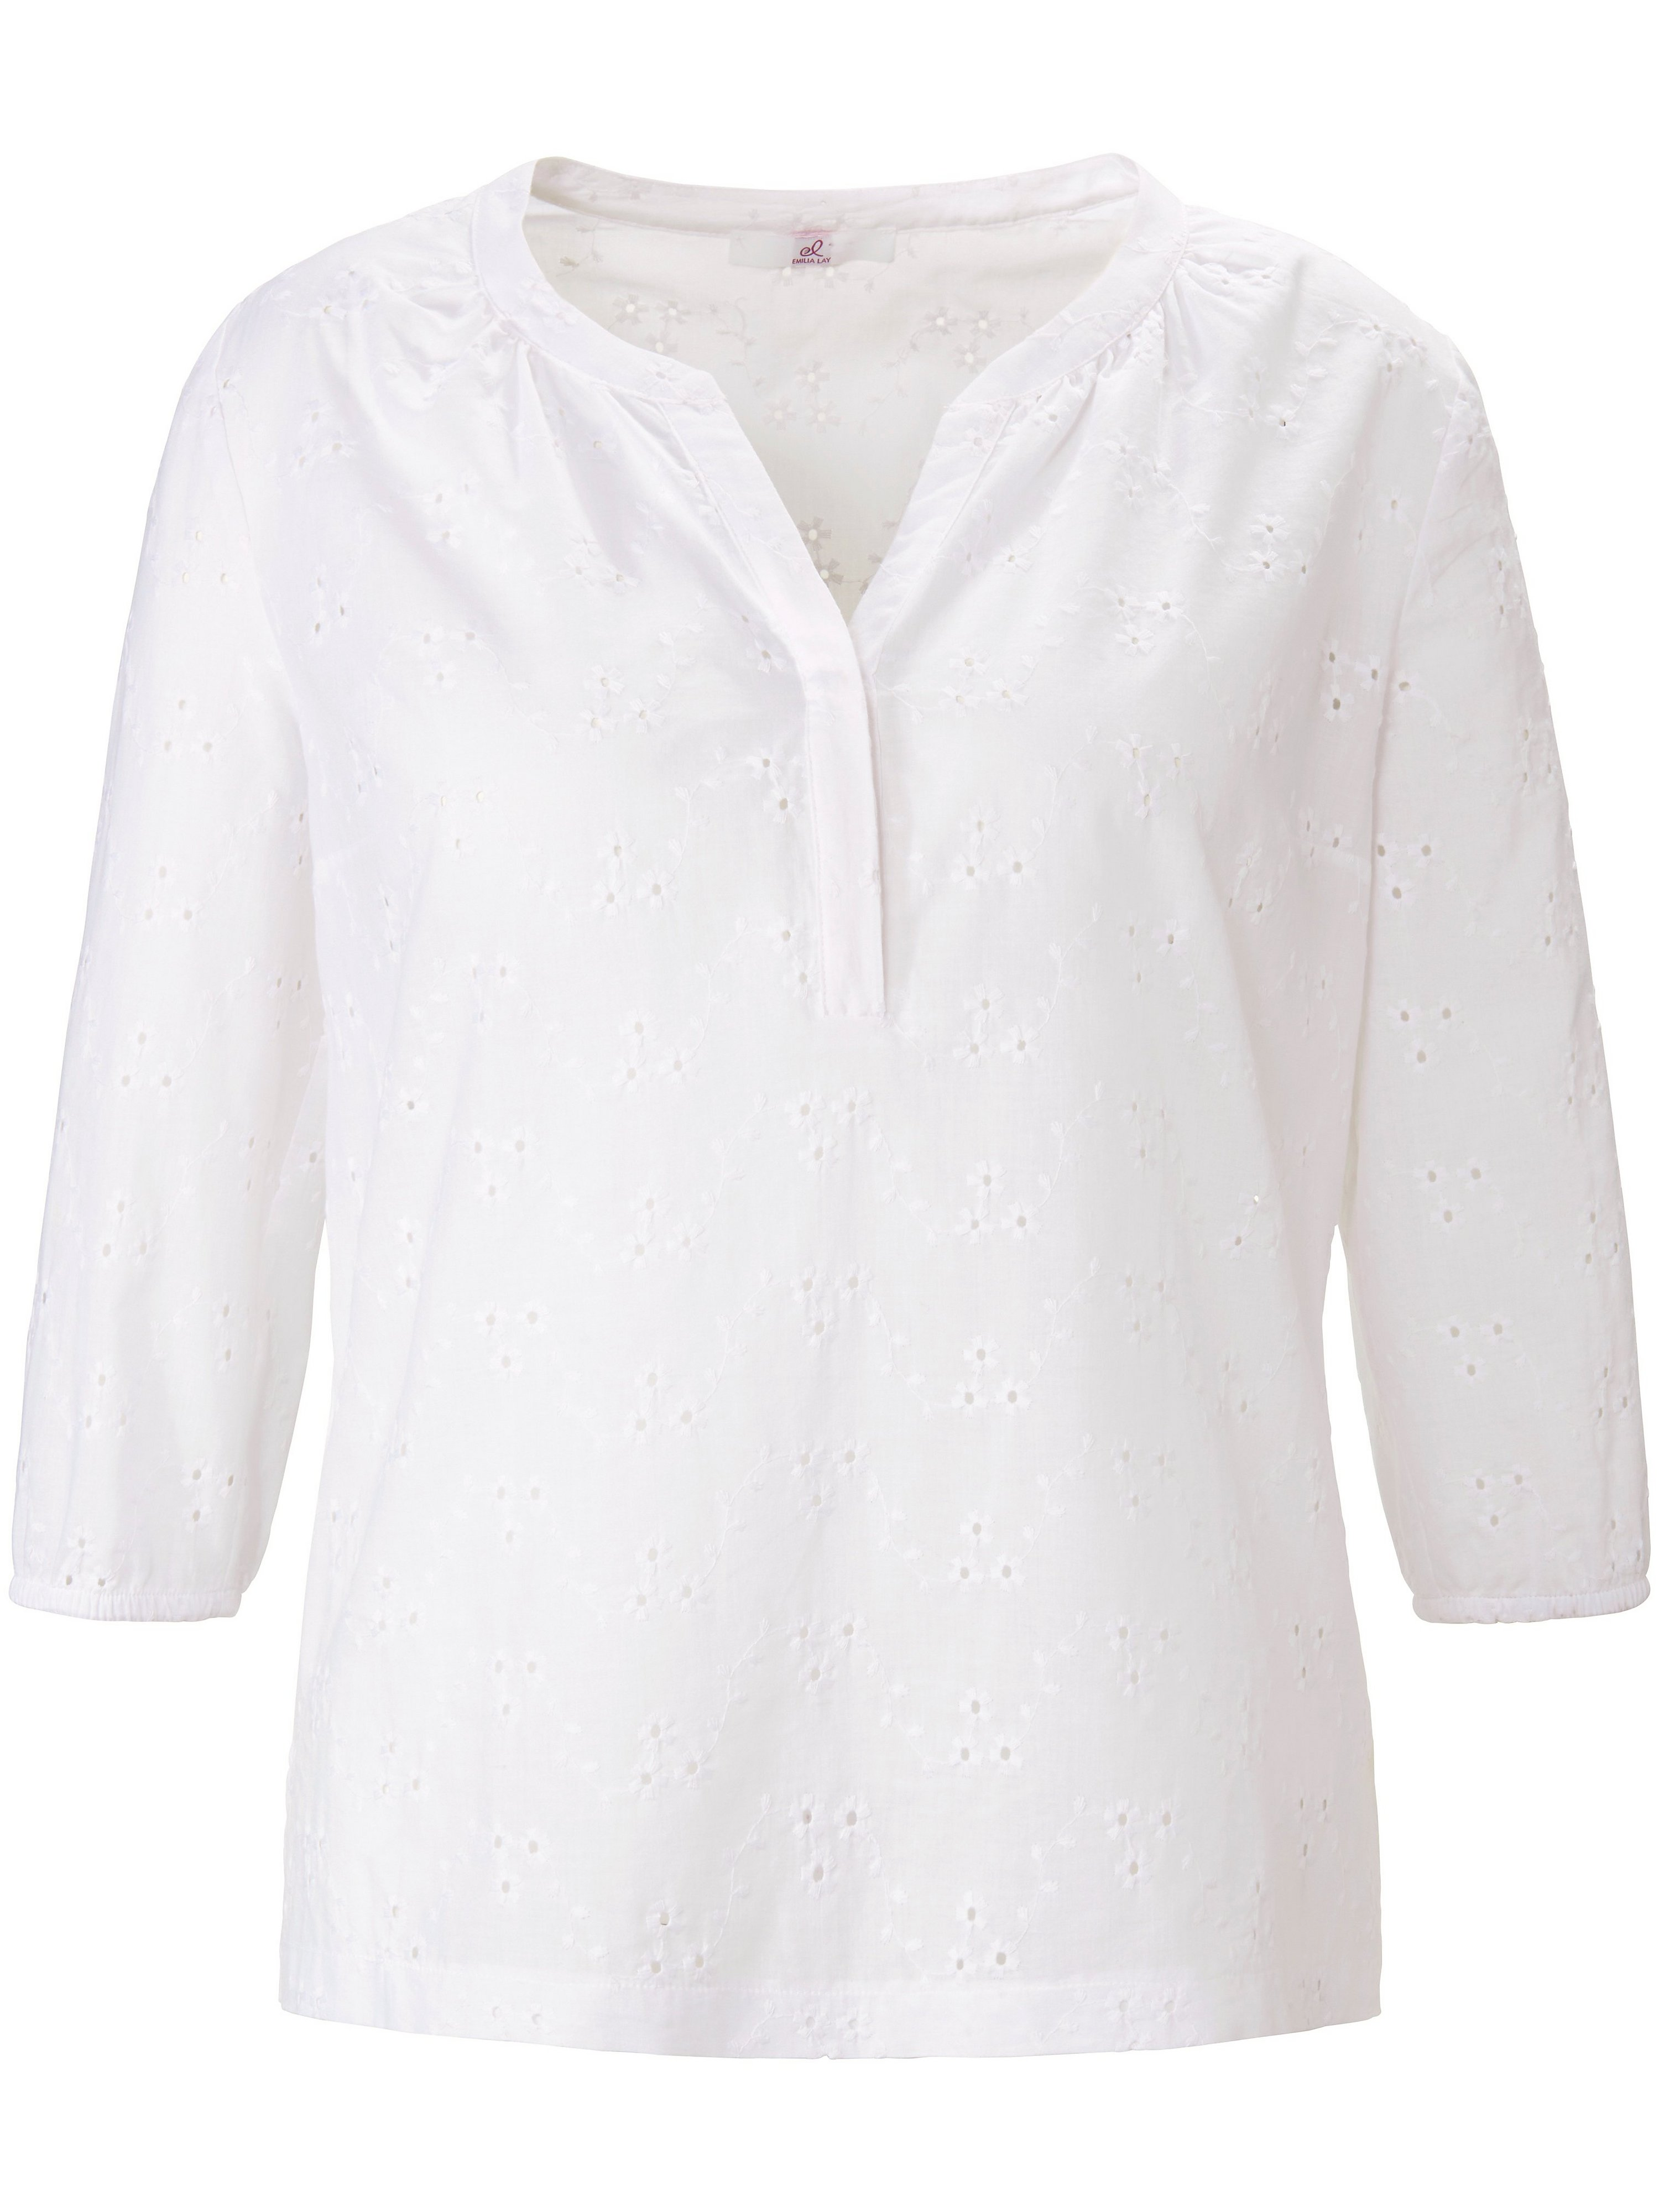 Pull-on style blouse in 100% cotton Anna Aura white